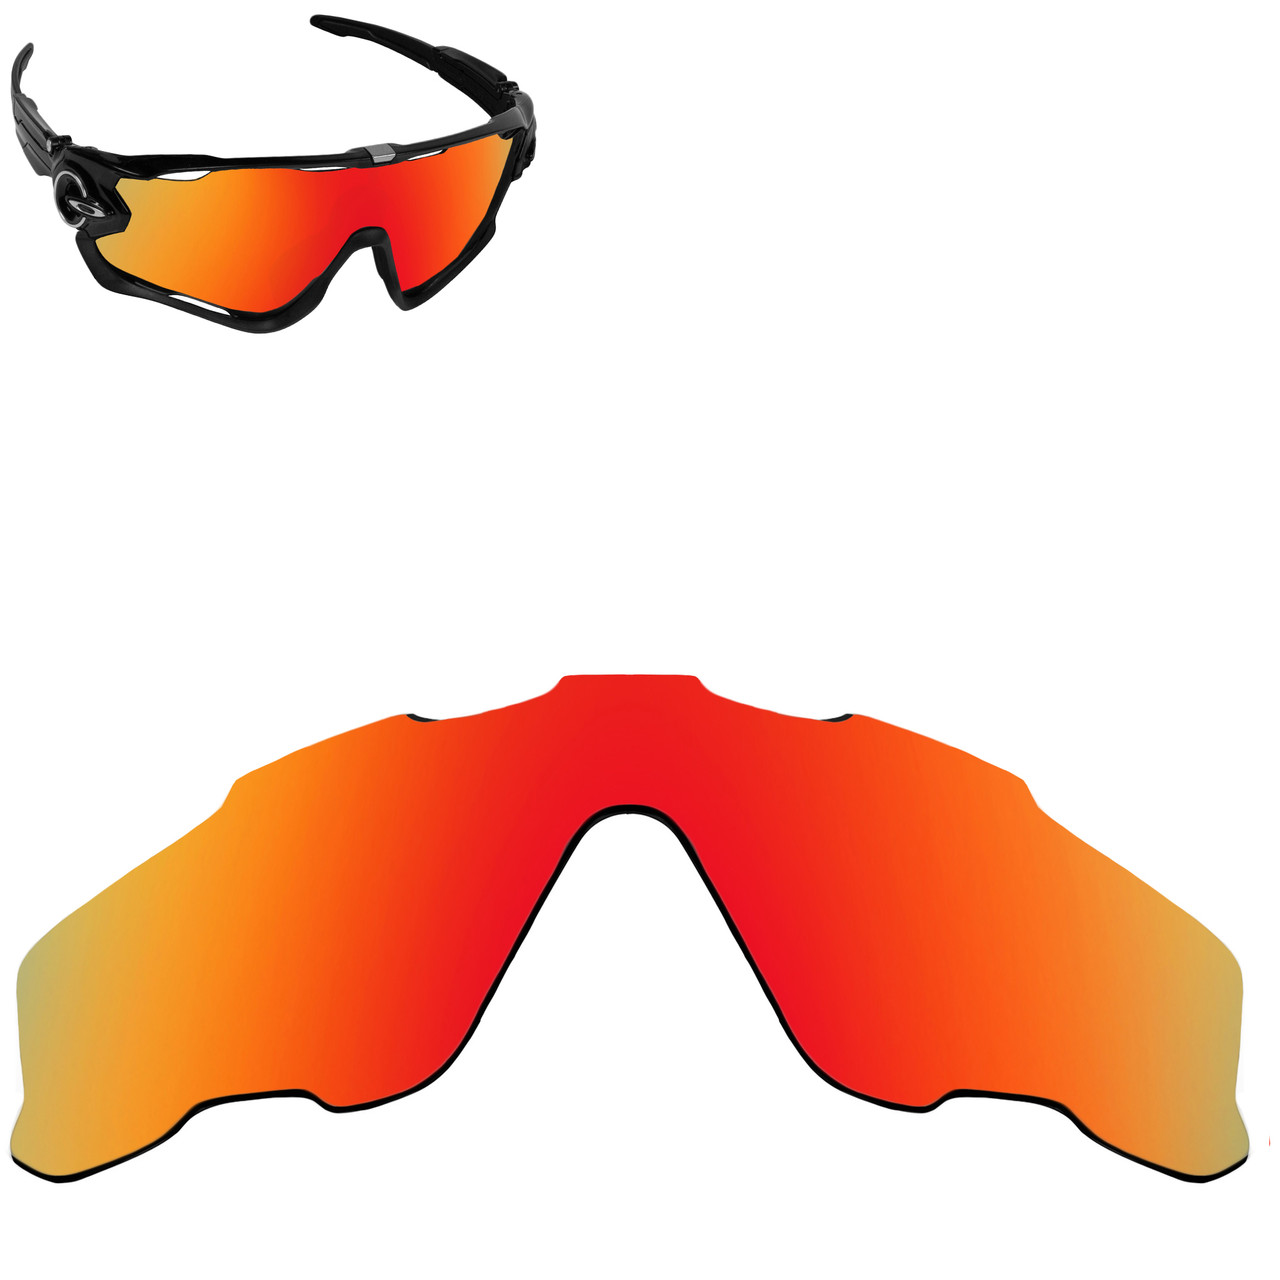 89337ef1ce Fits Oakley Jawbreaker - Seek Optics